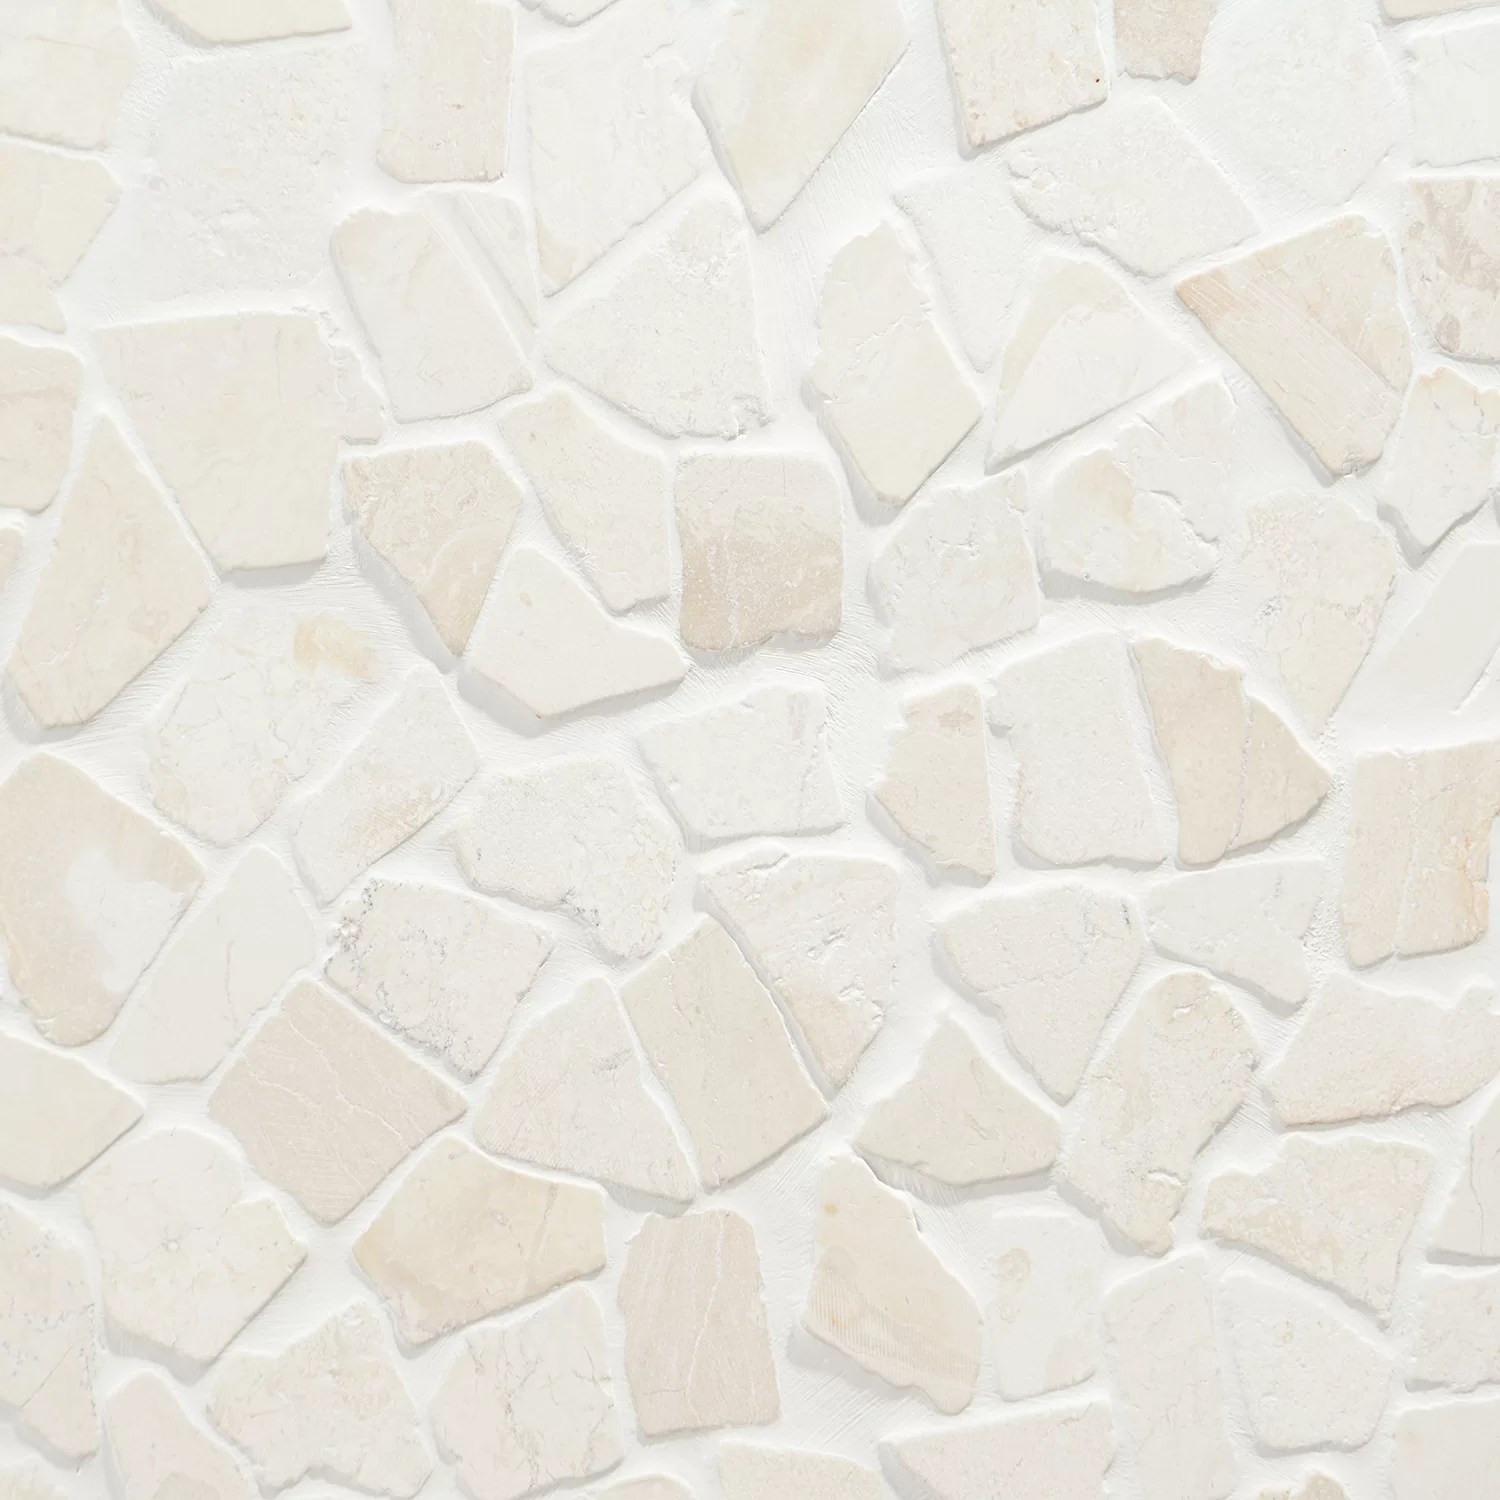 countryside 1 x 2 natural stone mosaic tile